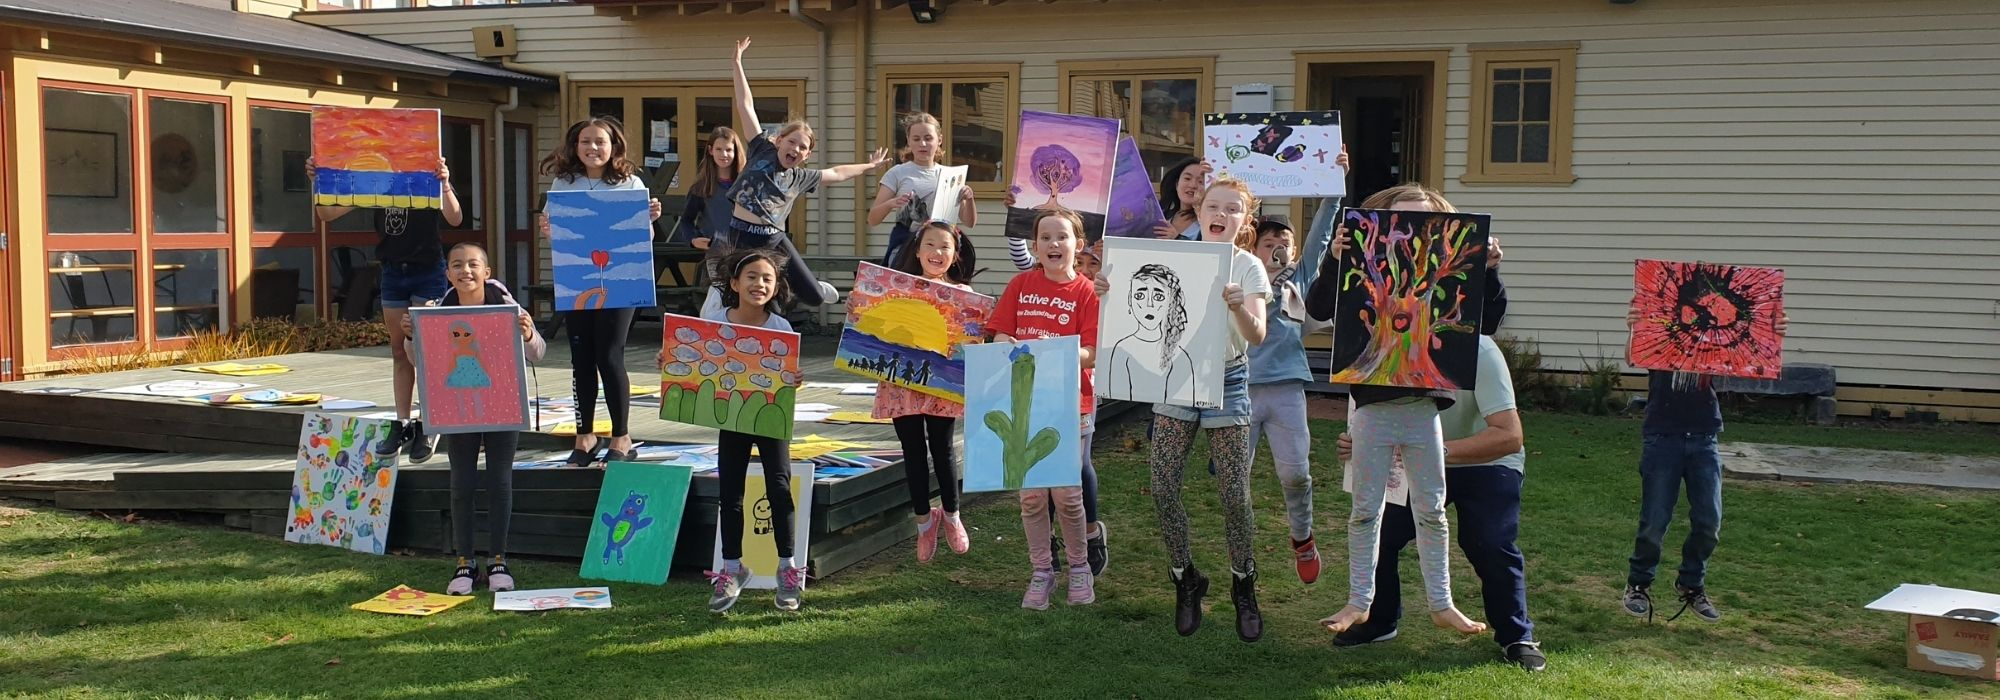 Bring the kids to Rotorua for a creative, colourful, crafty time